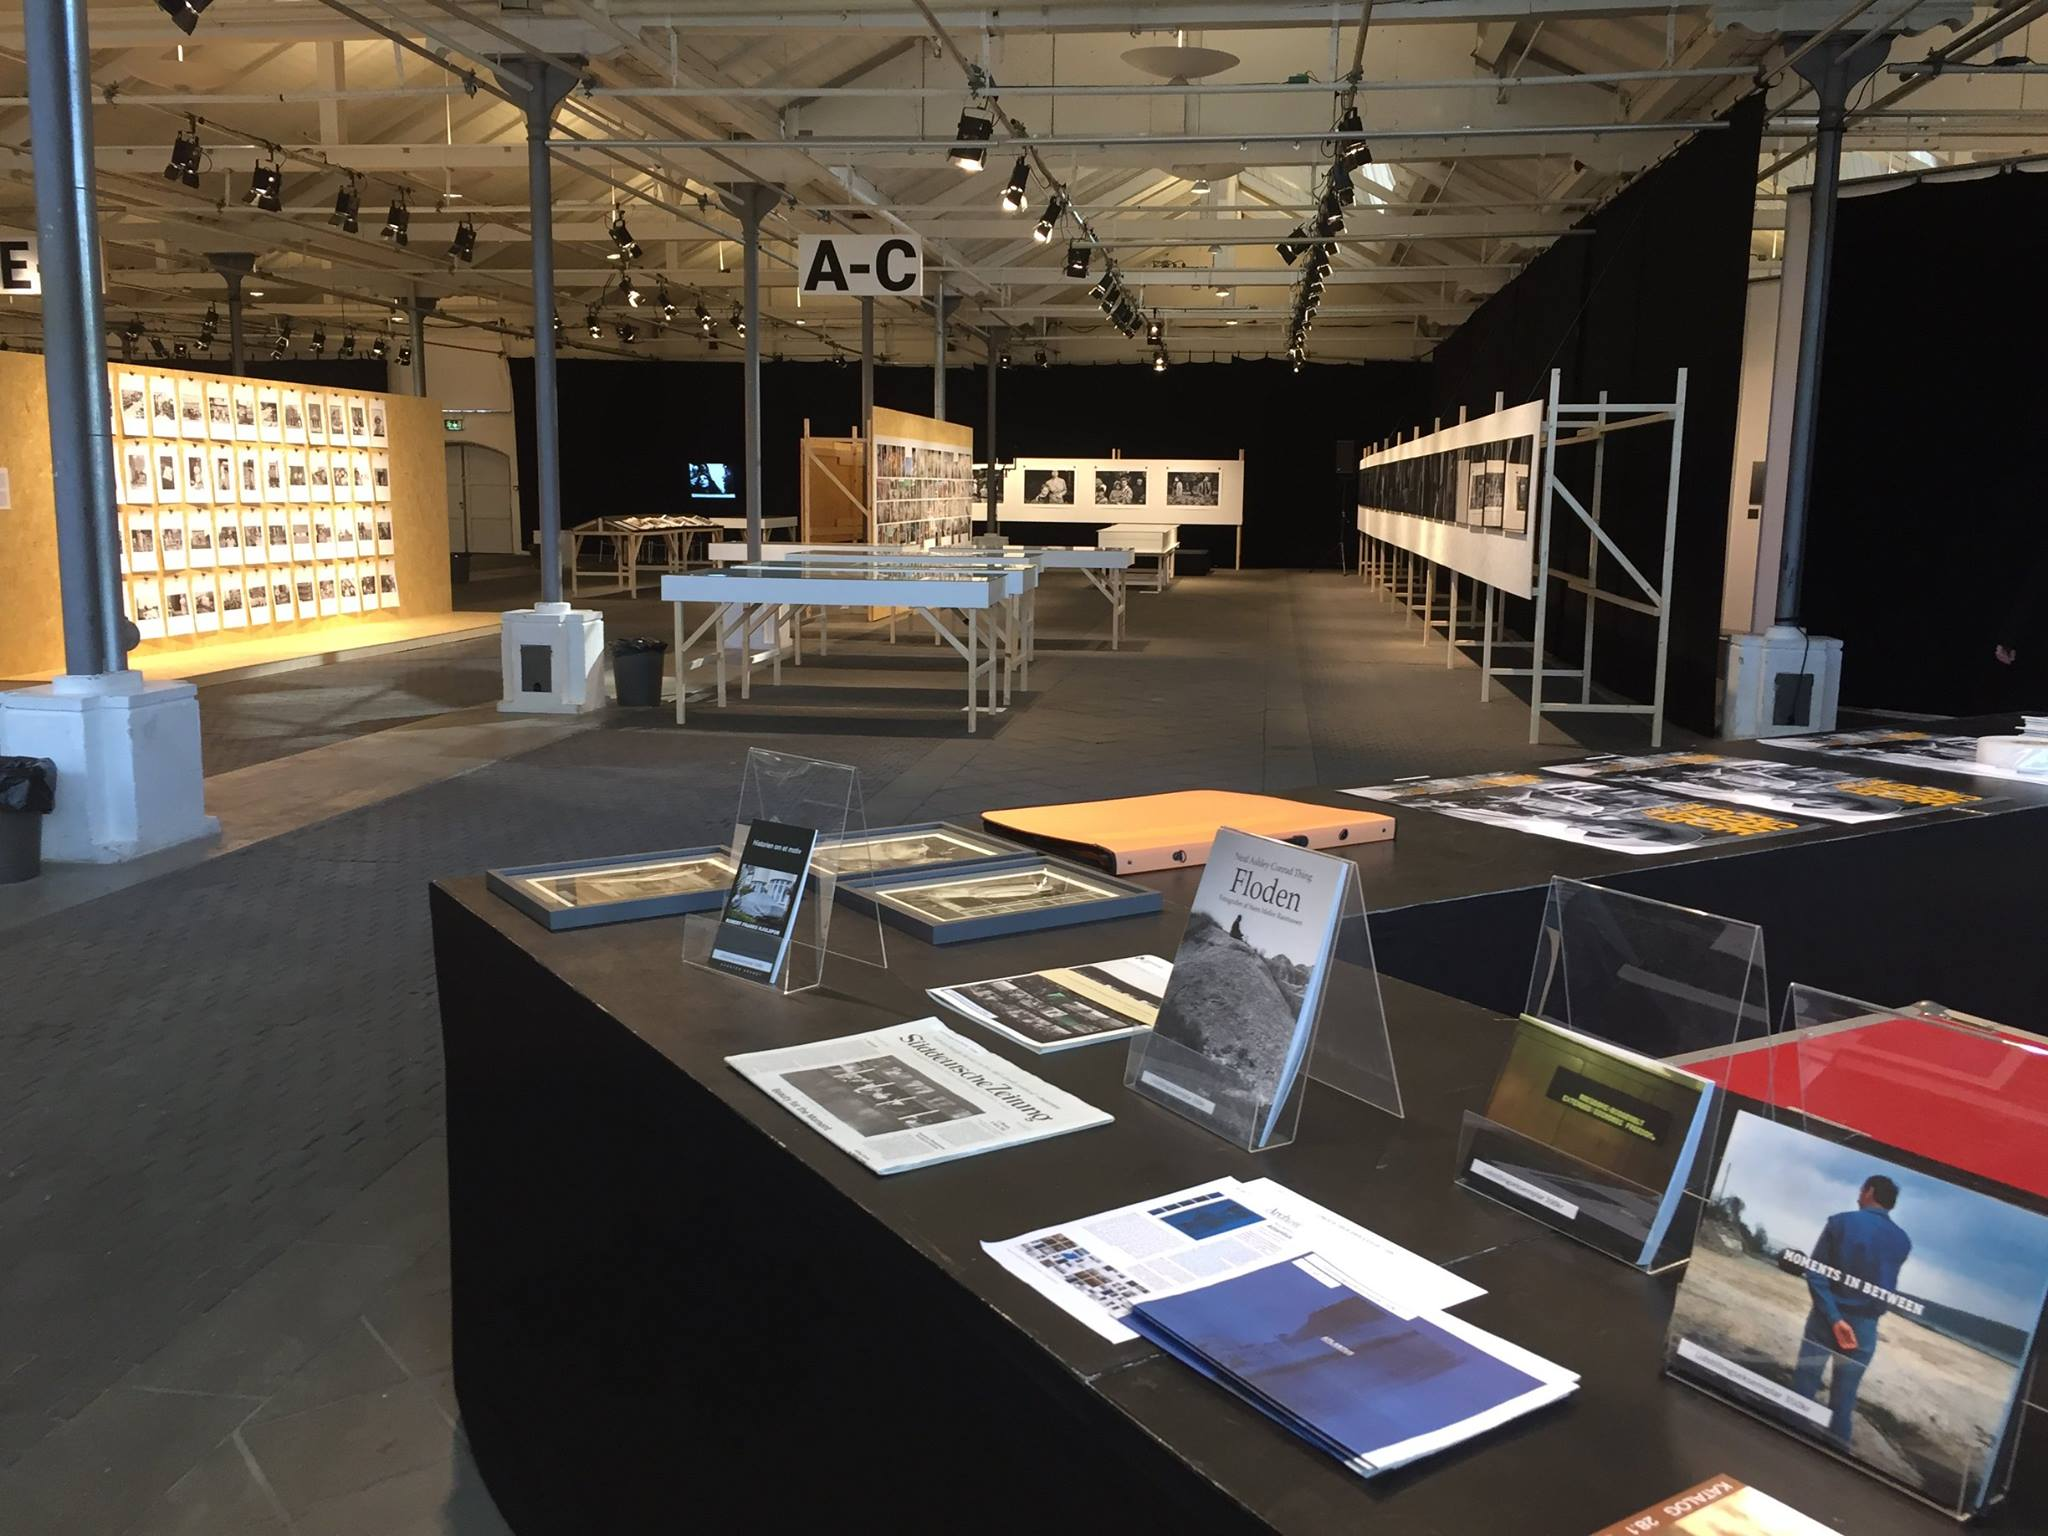 Atlantus on sale in Copenhagen during a major summer exhibition on Street Photography – A Tribute to Everyday Life at  Øksnehallen